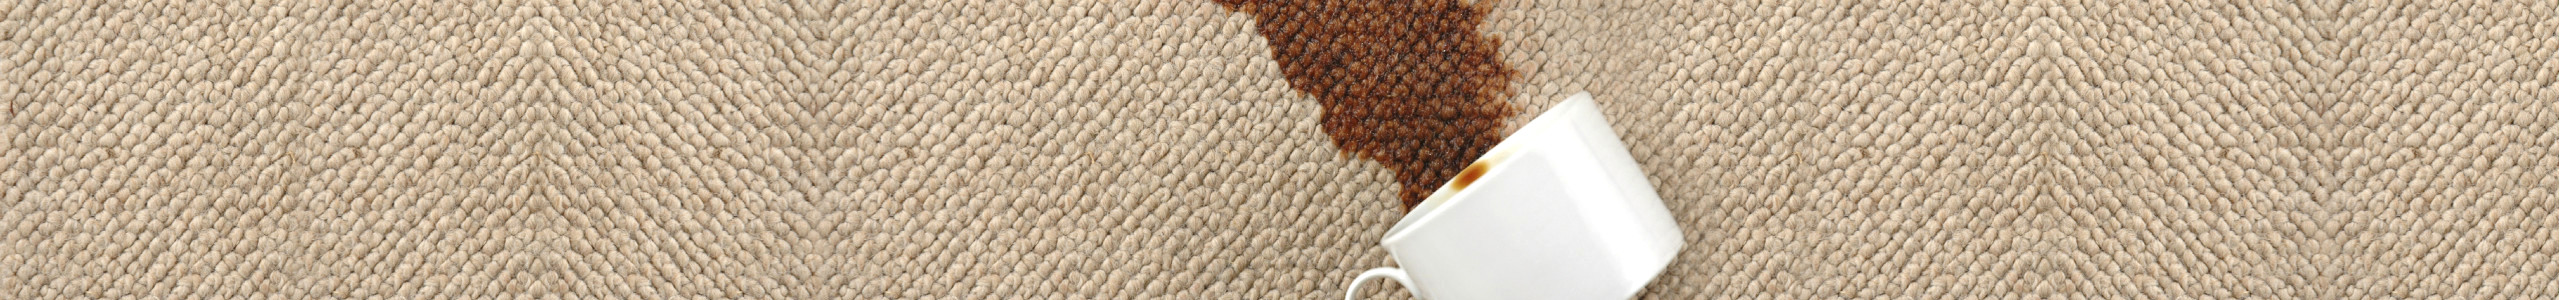 Has Your Carpet Gone From Flat To Wrinkled It May Be Time